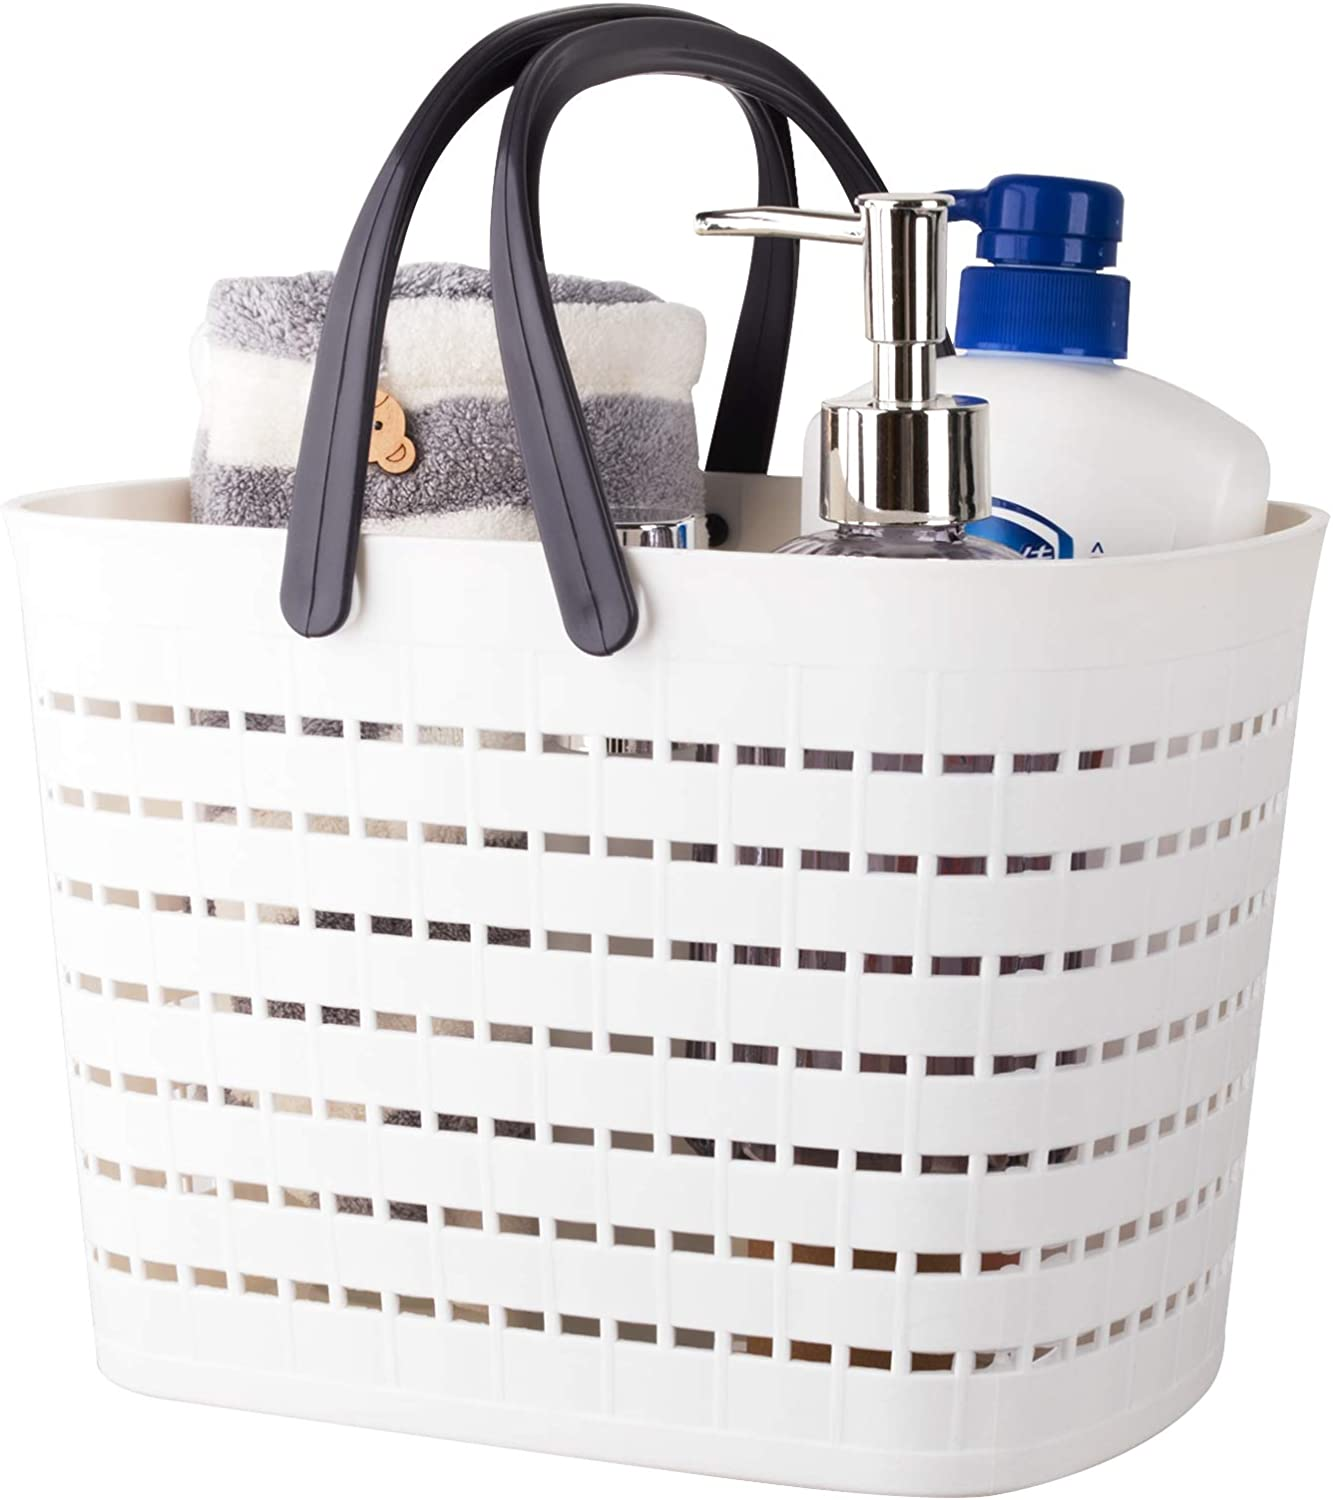 Ranking Tucson Mall TOP5 JiatuA Plastic Storage Basket with Handle for Caddy Tote Shower